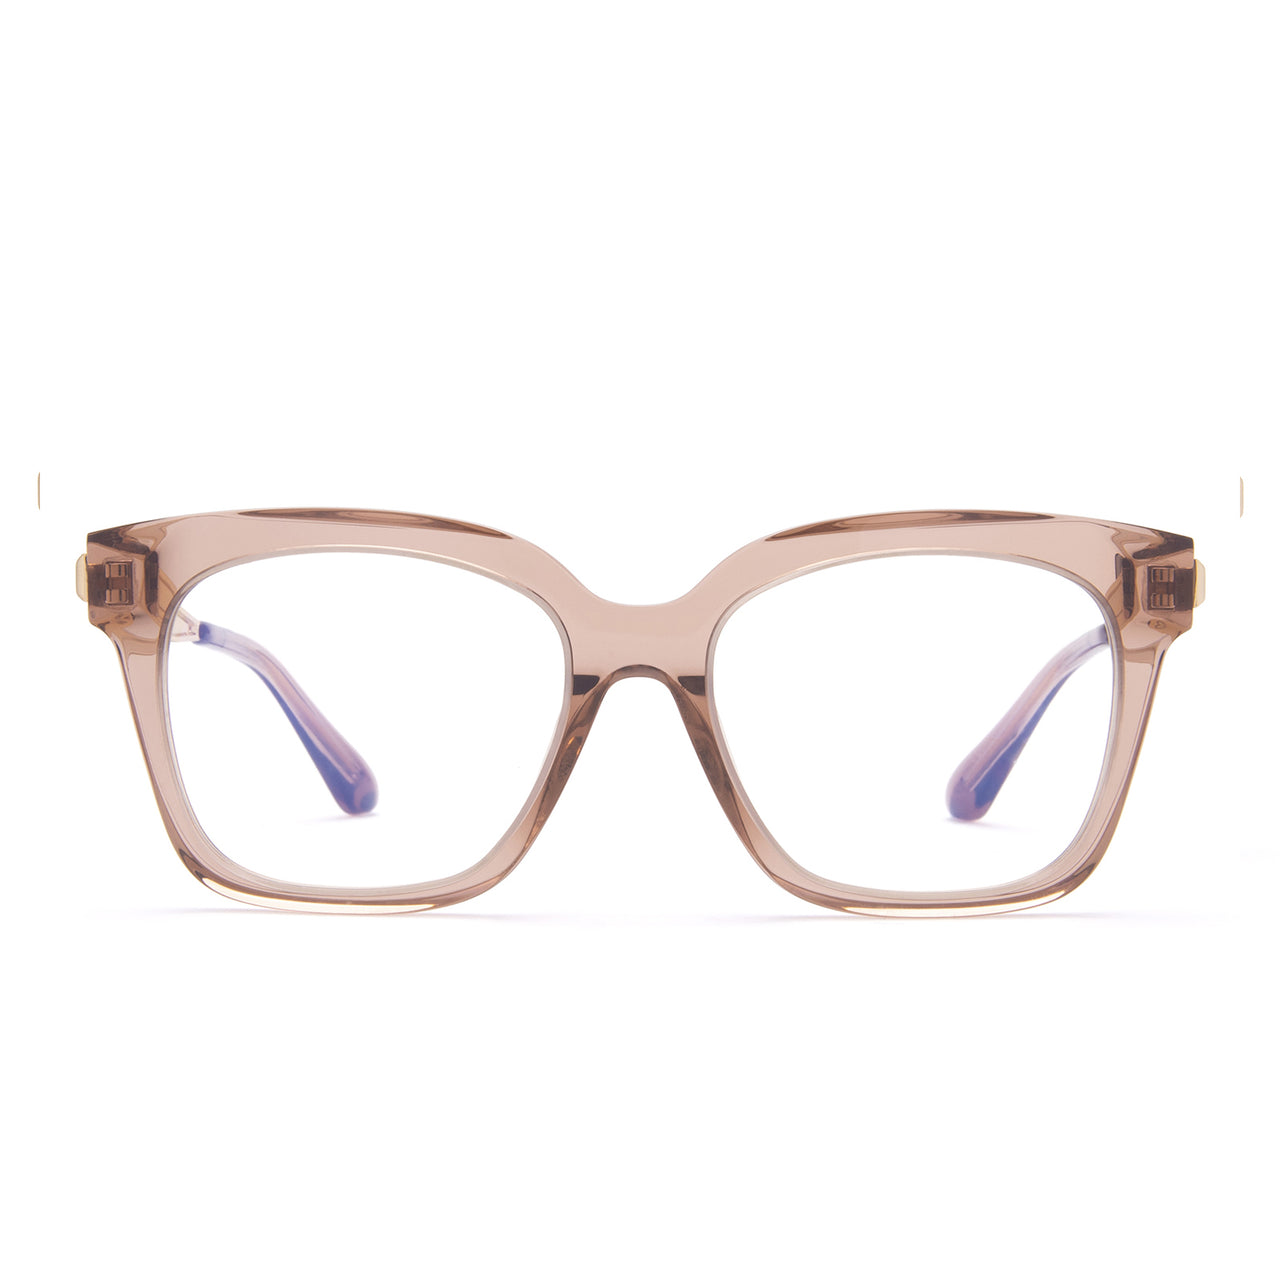 BELLA XS - CAFÉ OLE + PRESCRIPTION CLEAR FRONT